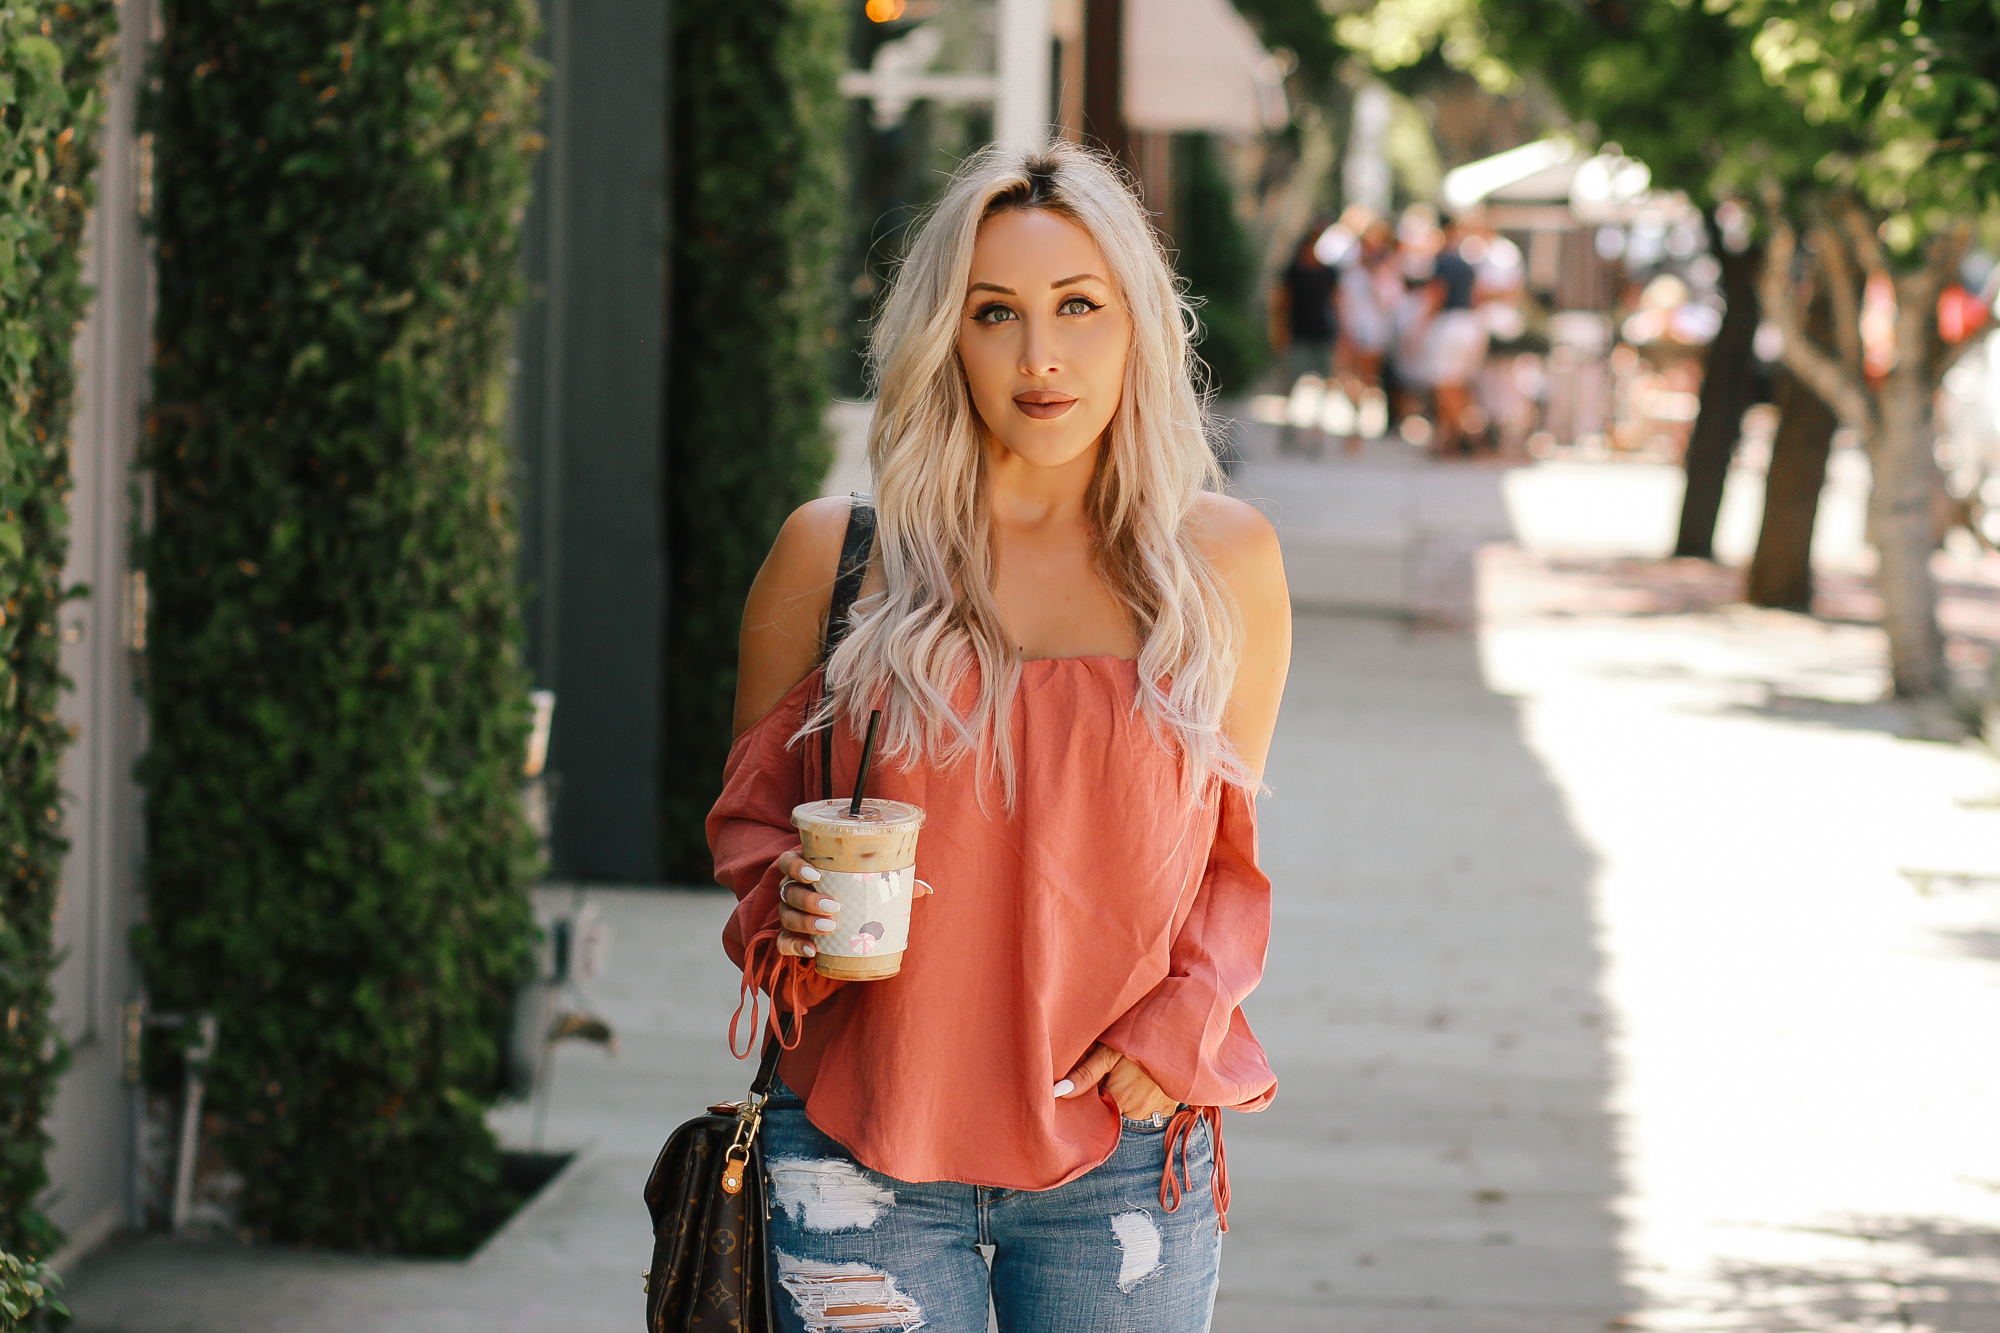 Blondie in the City | Off the Shoulder Top, Distressed Jeans, Sam Edelman Shoes | Summer Fashion